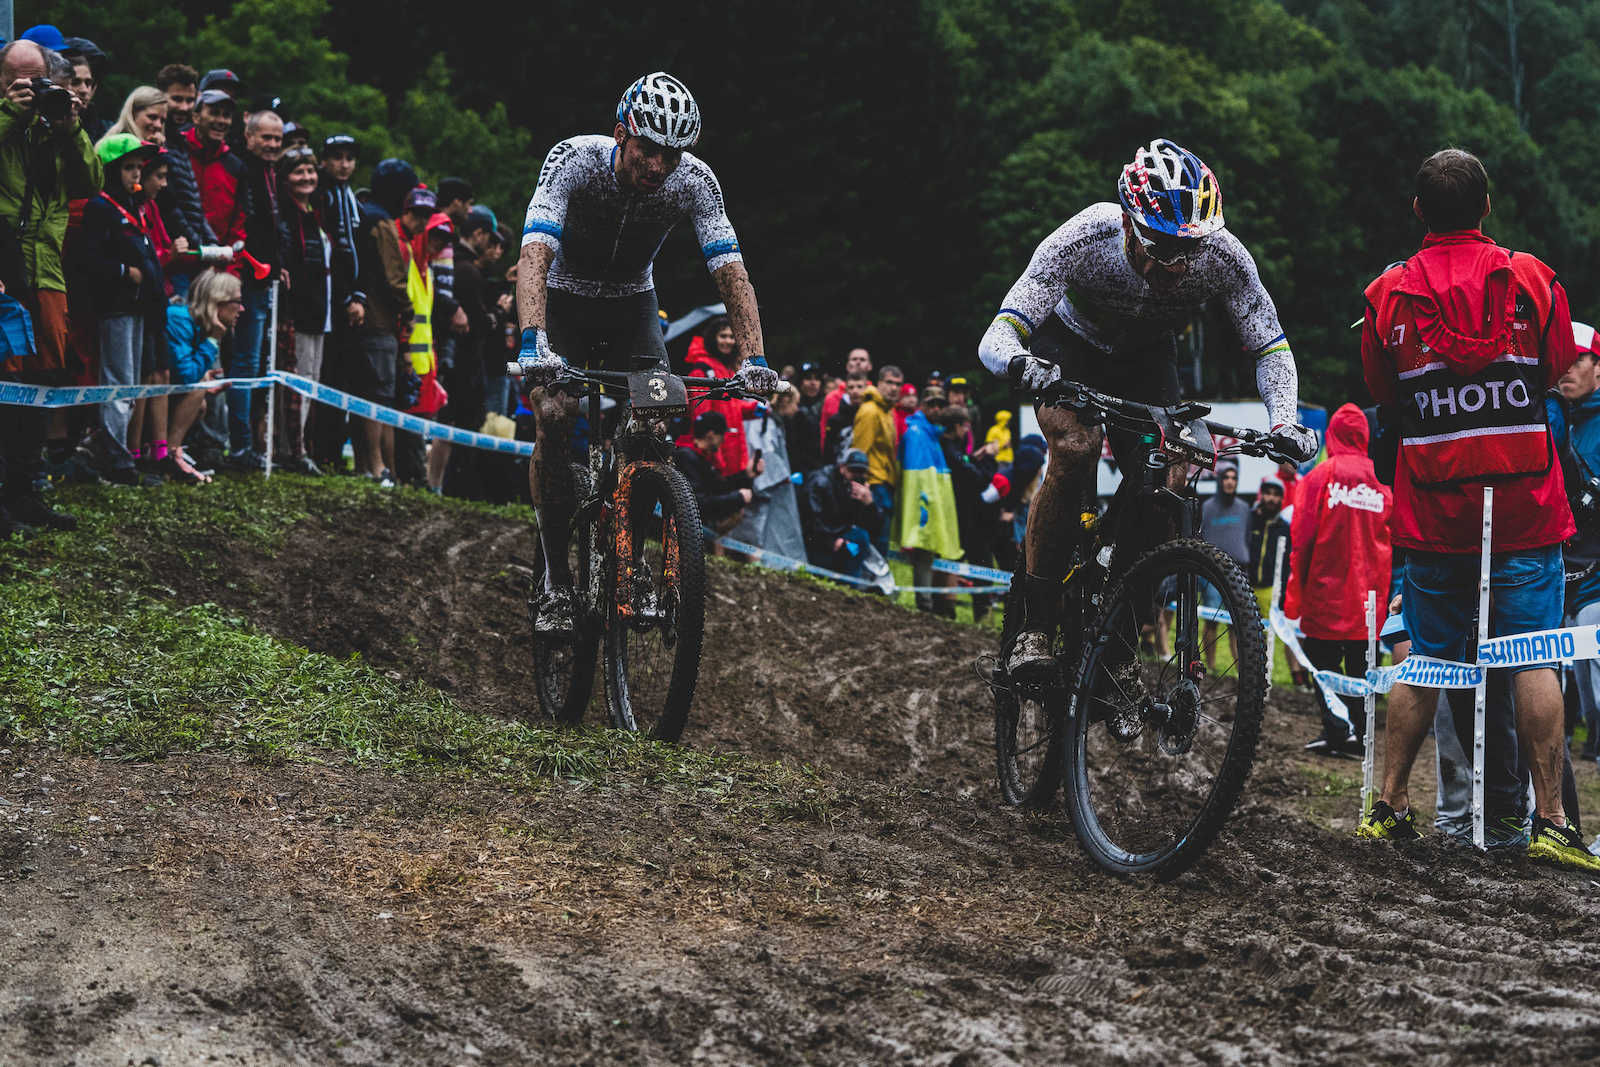 Henrique Avancini did a stint at the front but van der Poel looked like he was soft pedaling behind him.